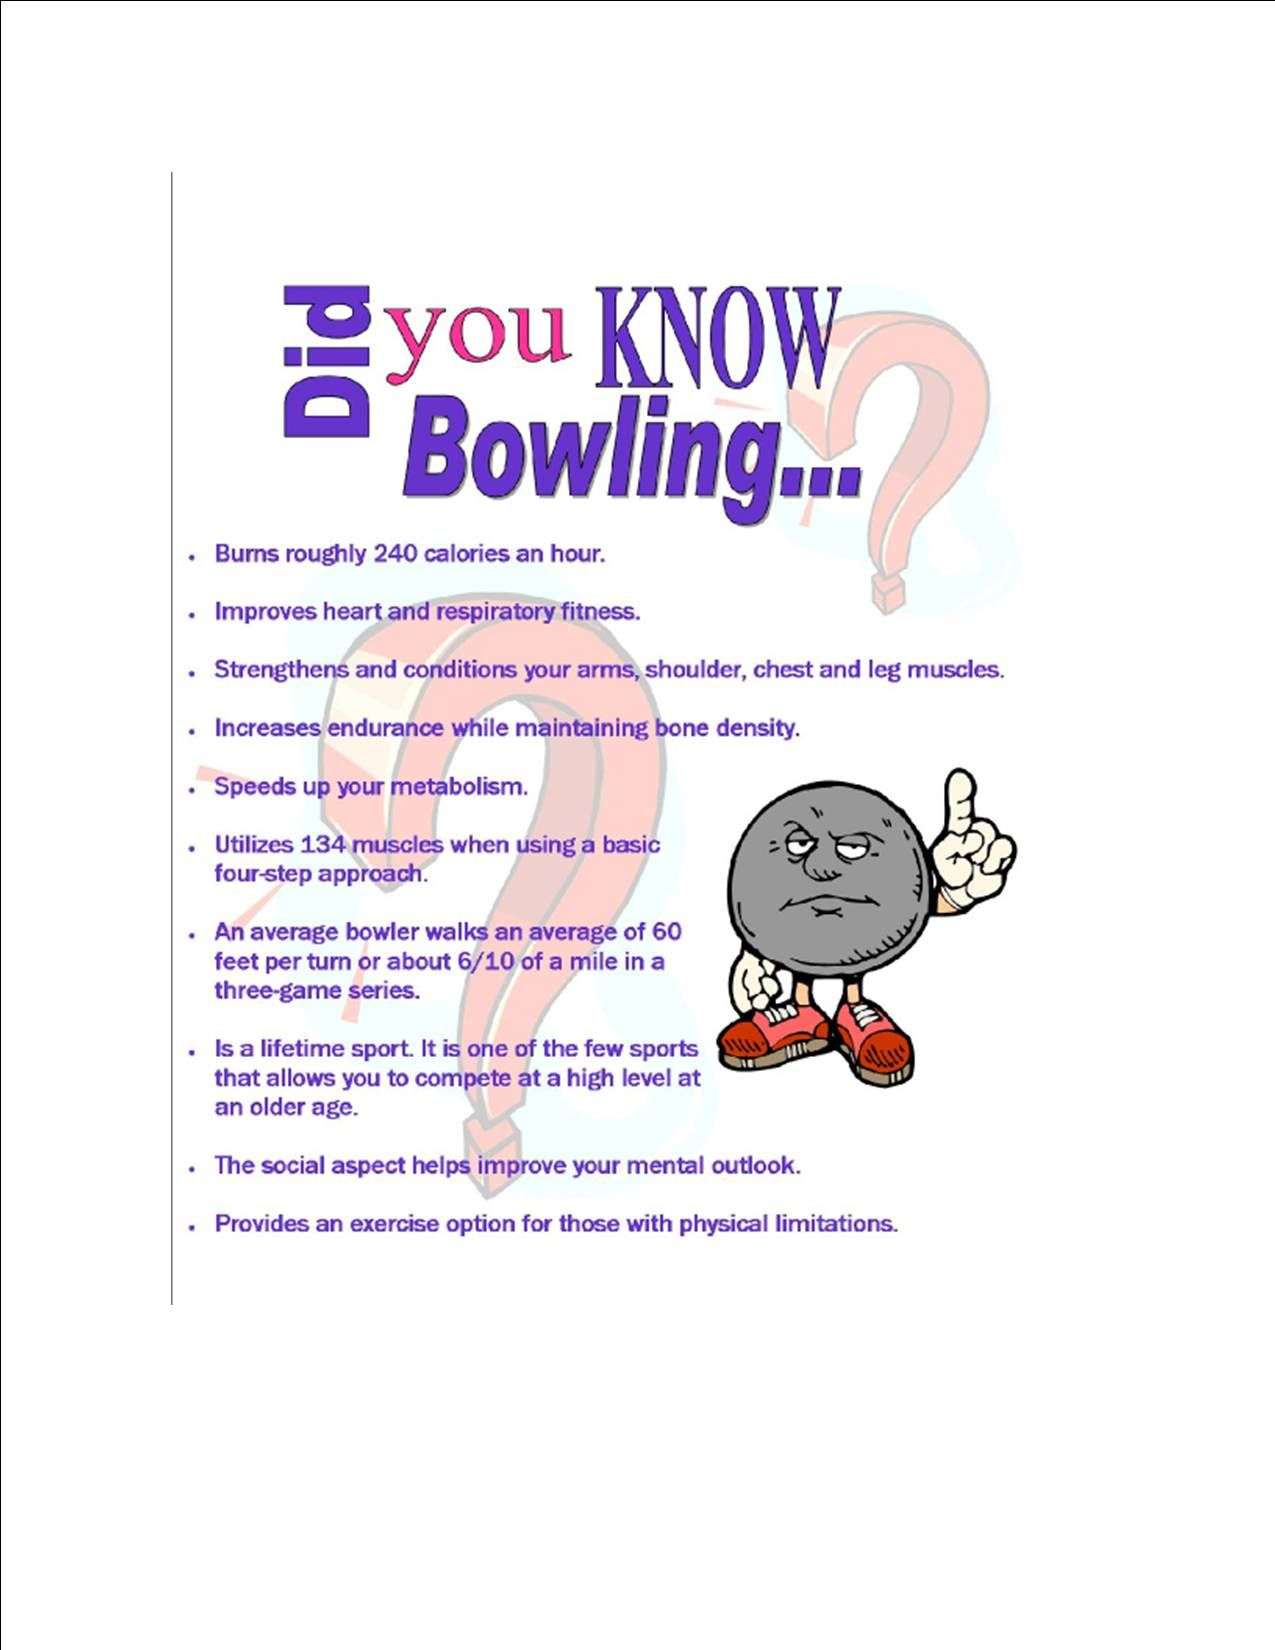 Bowling is fun and good for you | Bowling tips, Bowling ...